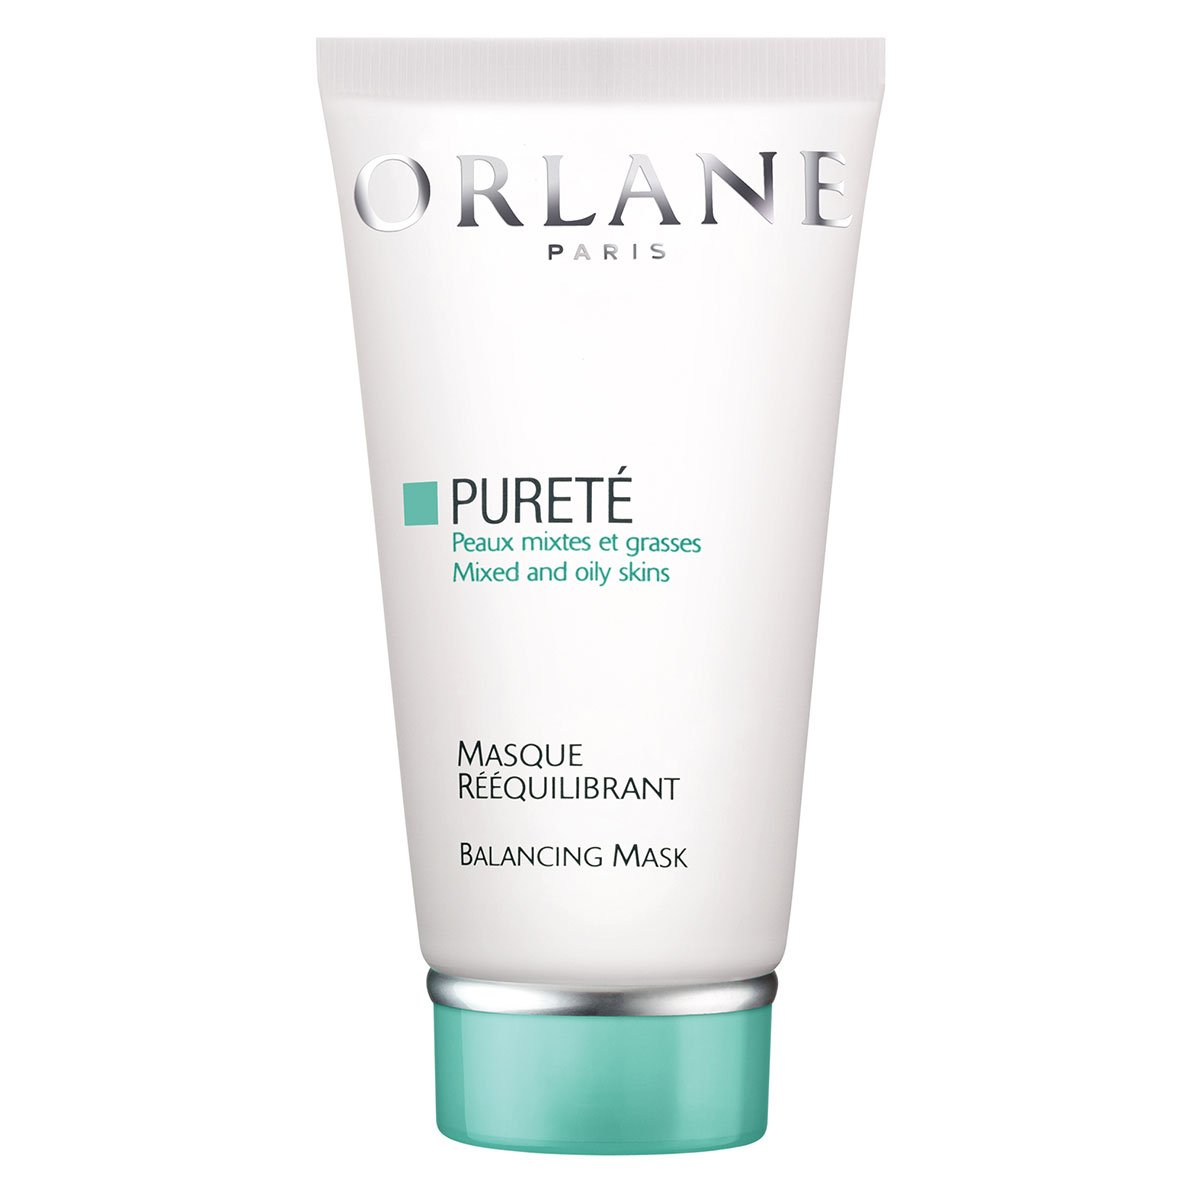 Orlane - Masque rééquilibrant - Tube 75 ml